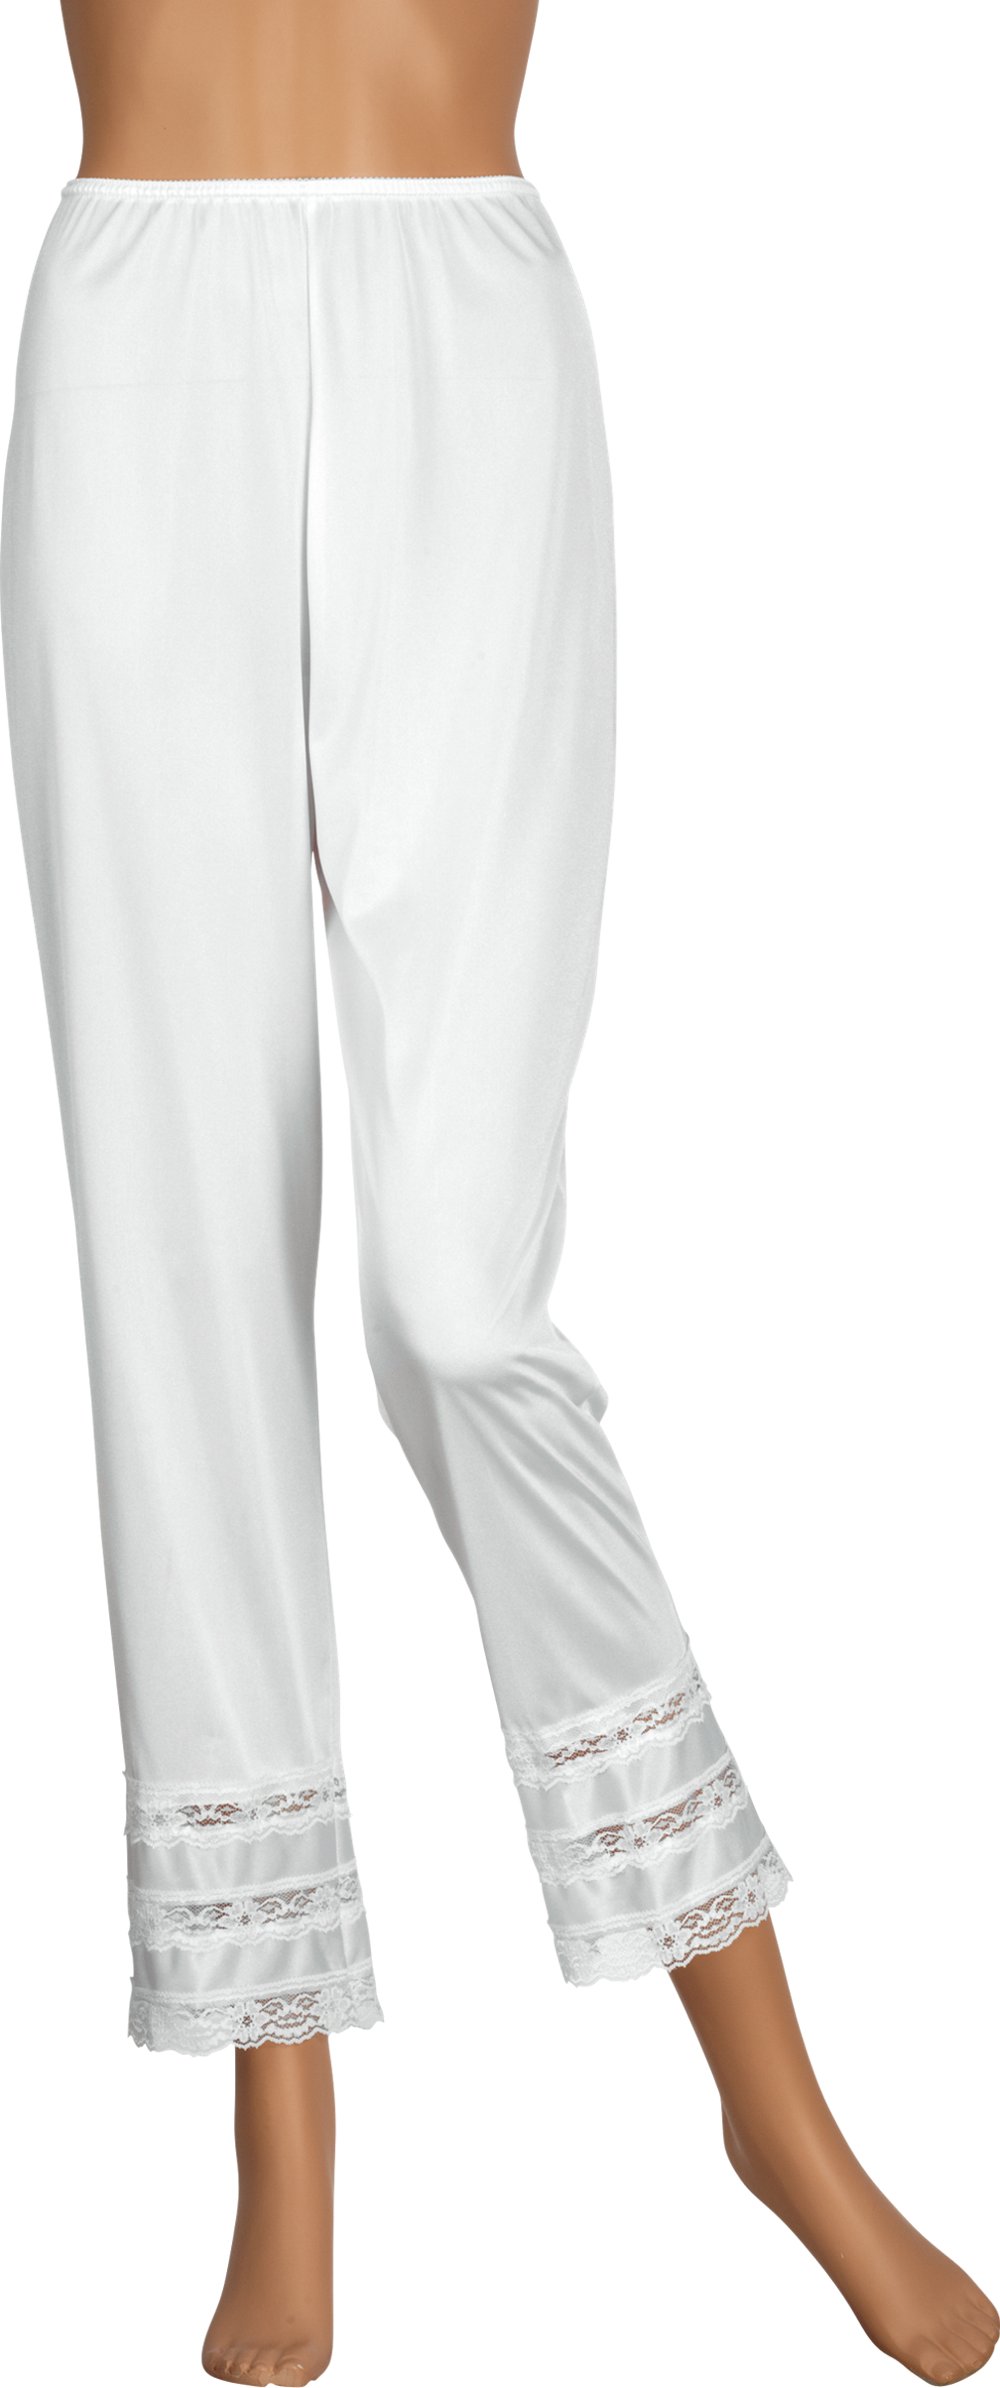 Stafford Mens Sleep Pants Size L Clear-Cut Texture Clothing, Shoes & Accessories Sleepwear & Robes